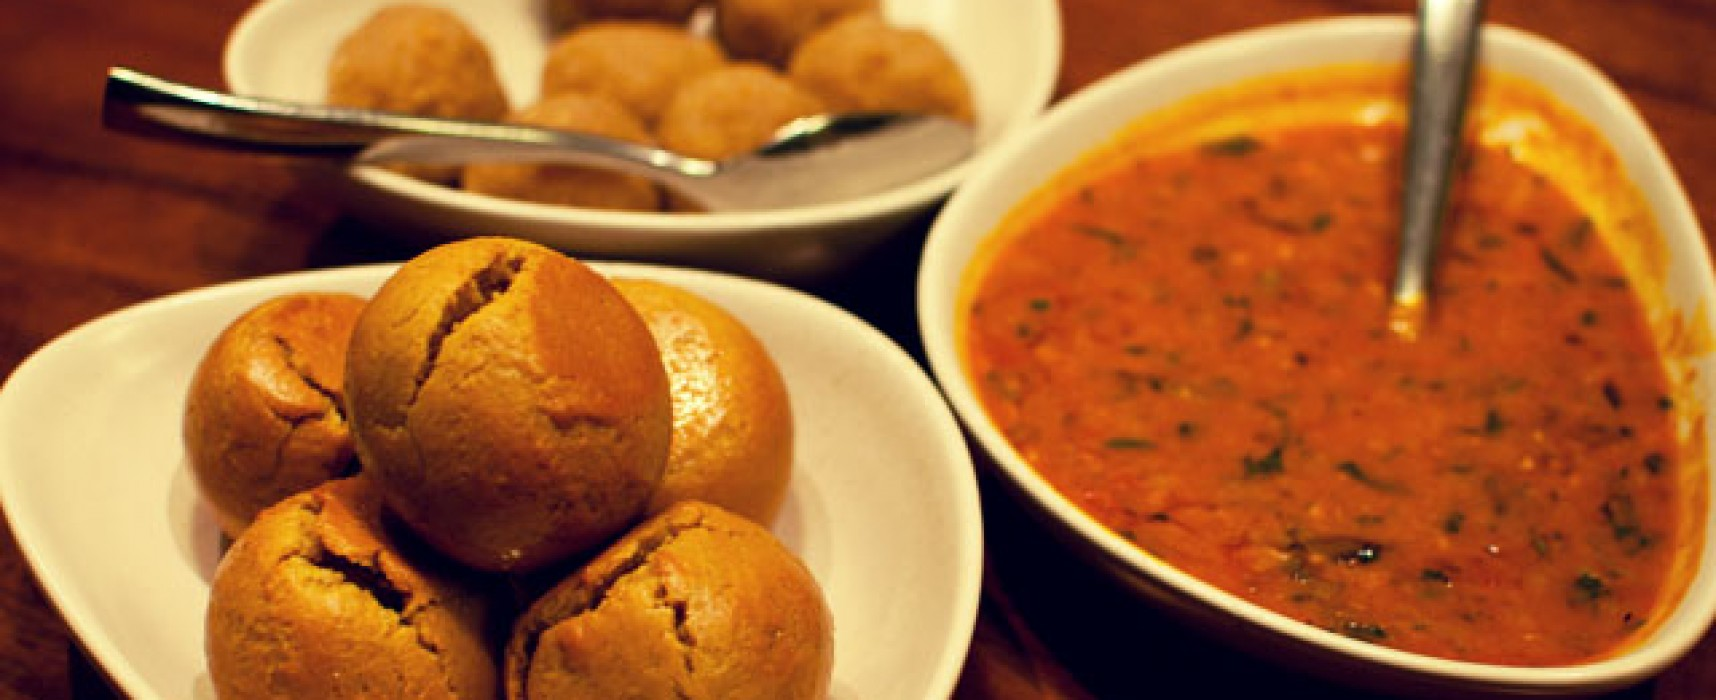 food culture of amritsar Amritsar culinary tours, amritsar, punjab 432 likes brilliant initiative to highlight amritsars pride in specialty food, culture and heritage.